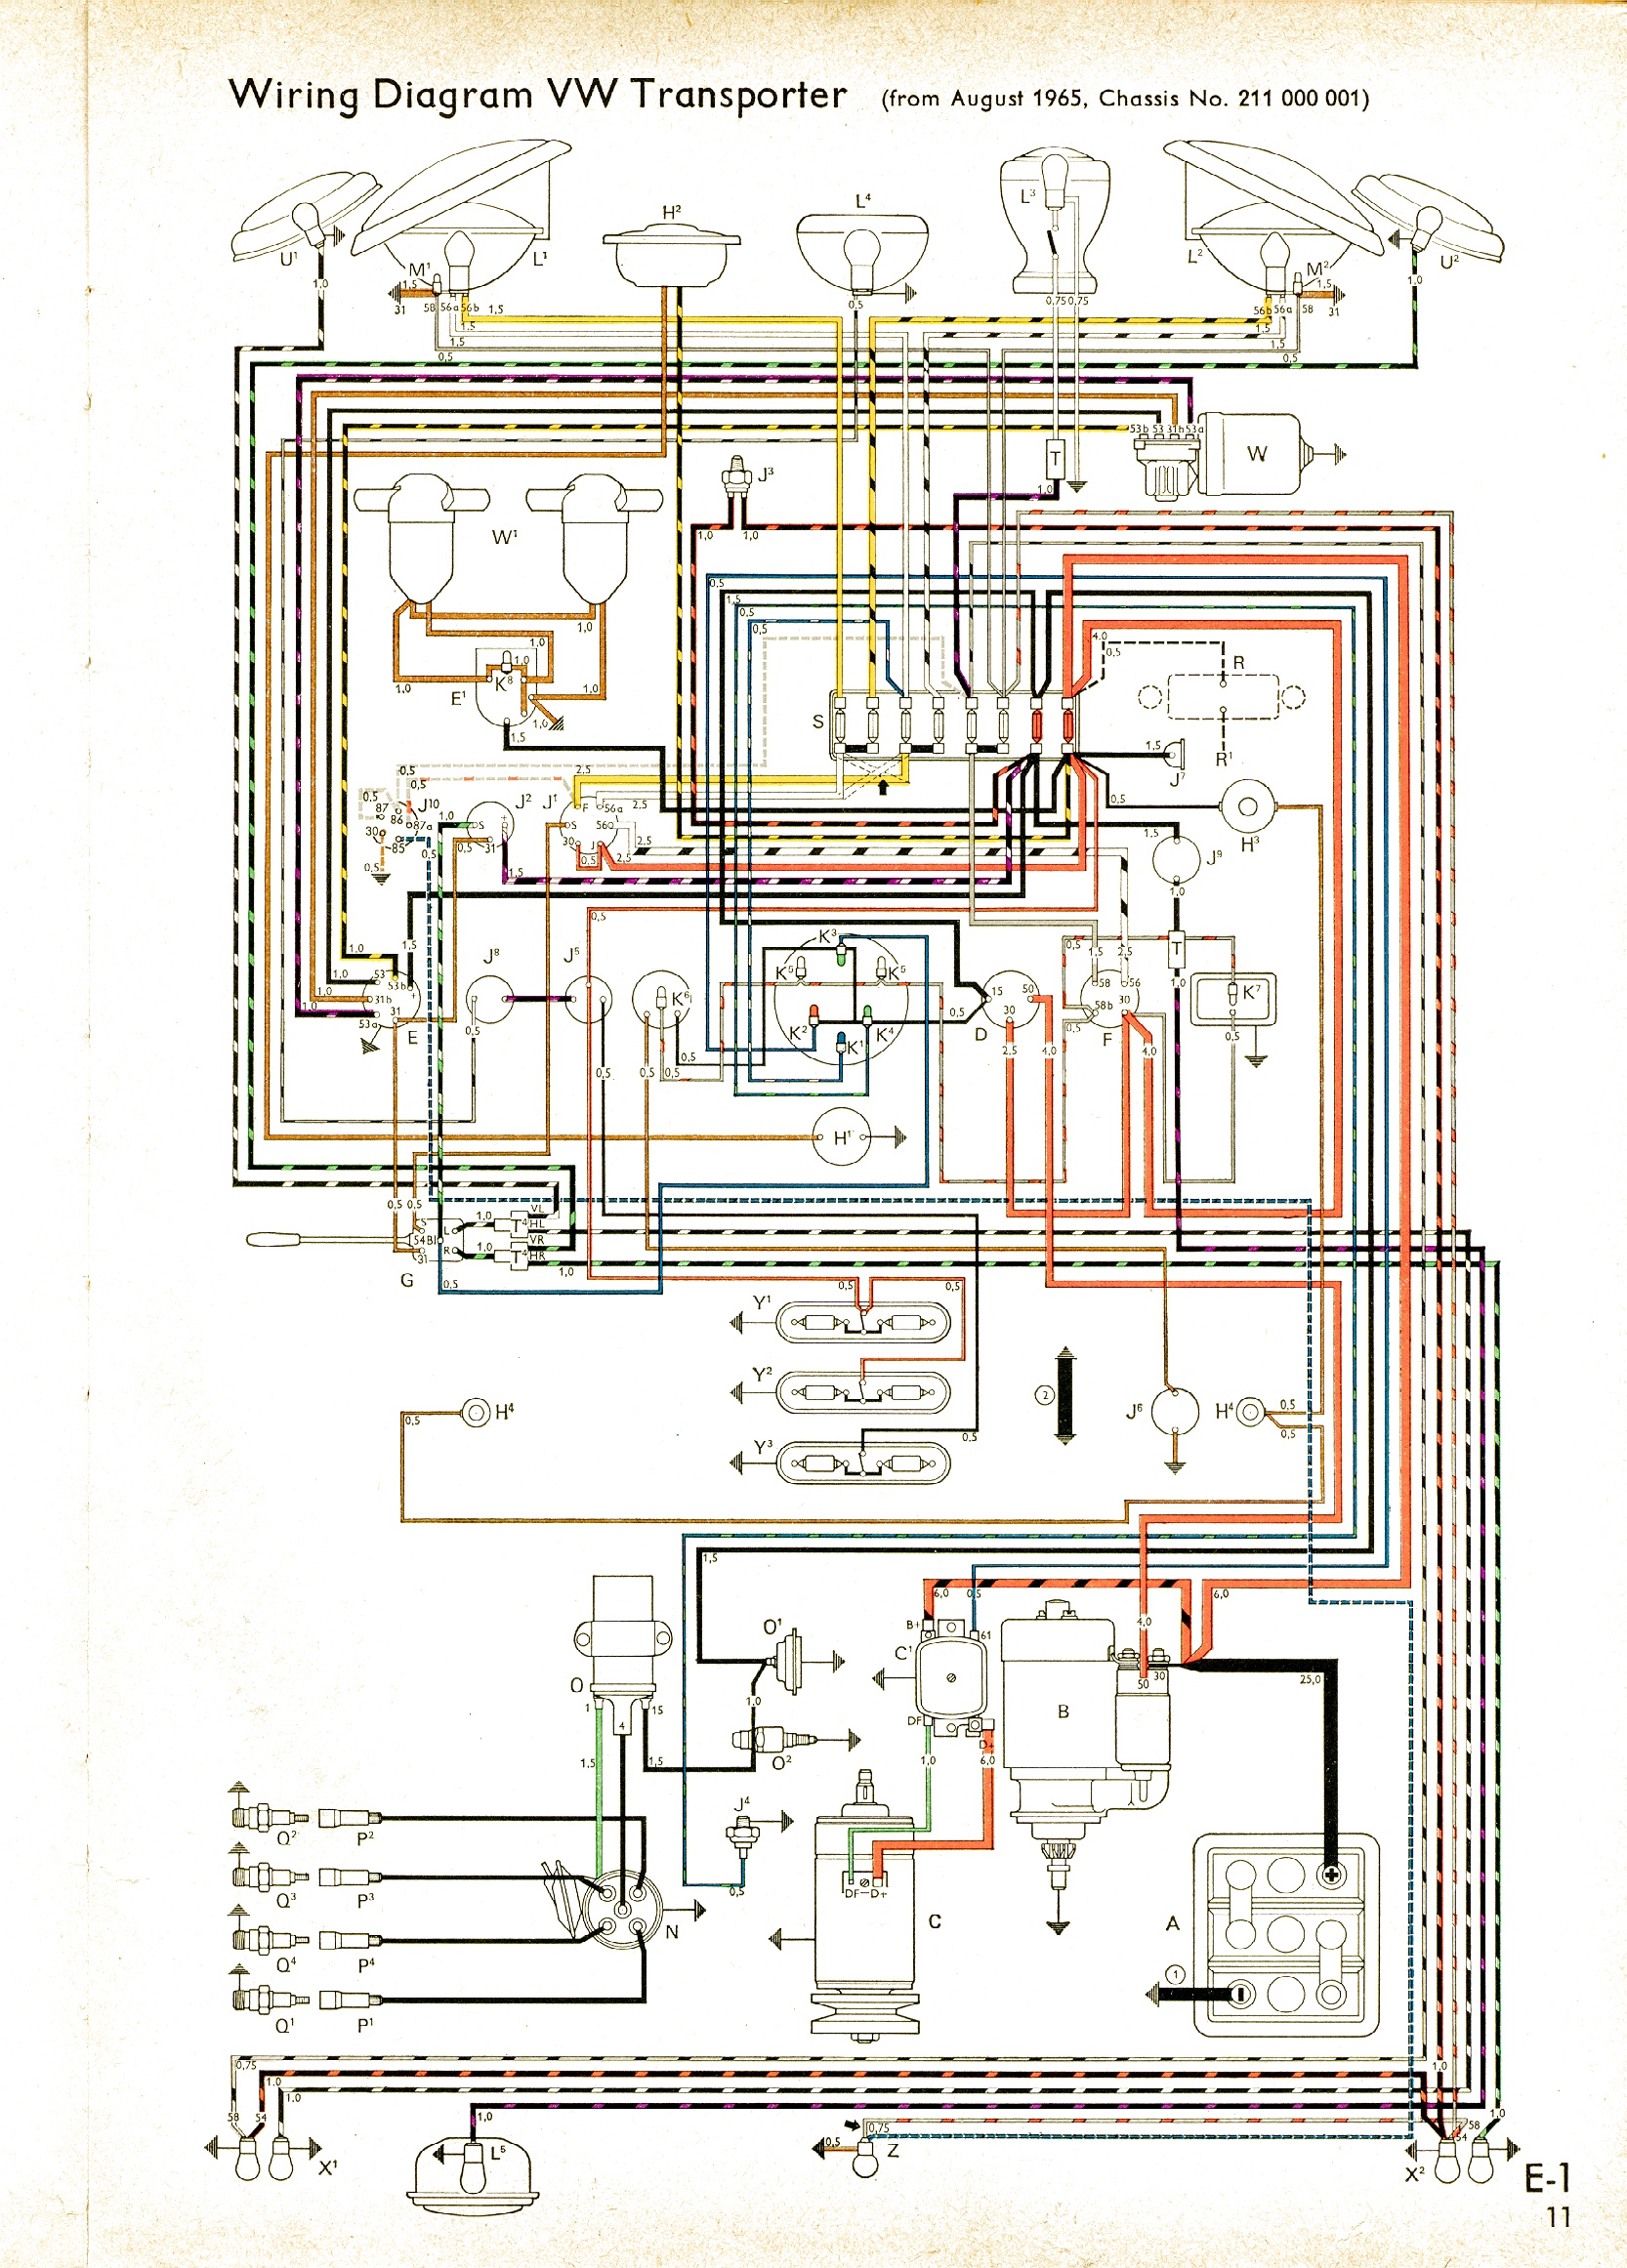 Vw van wiring diagram wiring diagrams schematics vintagebus com vw bus and other wiring diagrams com vw bus and other wiring diagrams vw van wiring diagram swarovskicordoba Choice Image